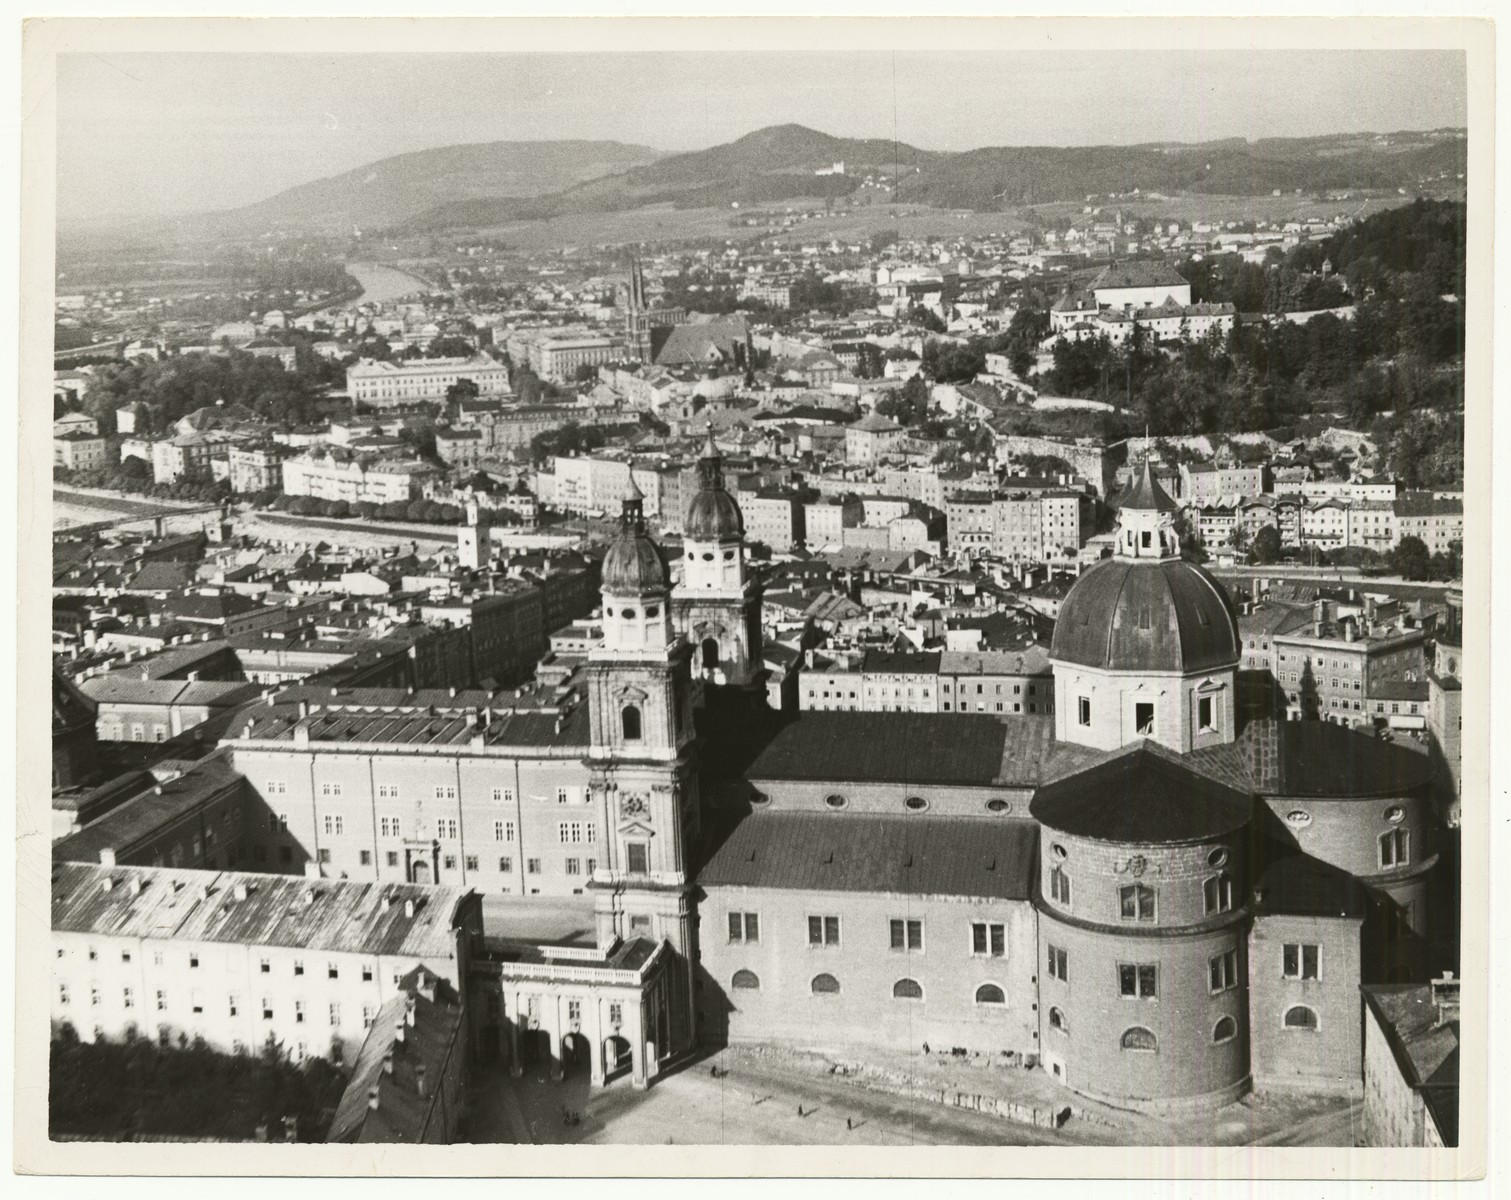 """A view from Hohensalzburg Fortress in Salzburg, Austria.  In the foreground is the Salzburg Cathedral.  The handwritten caption on the back of the photograph reads: """"Salzburg, Austria, view from Fortress Hohensalzburg.  In foreground the Dom (Cathedral), in front of which the """"Everyman"""" (Jedermann) performances during the Salzburg festival take place."""""""